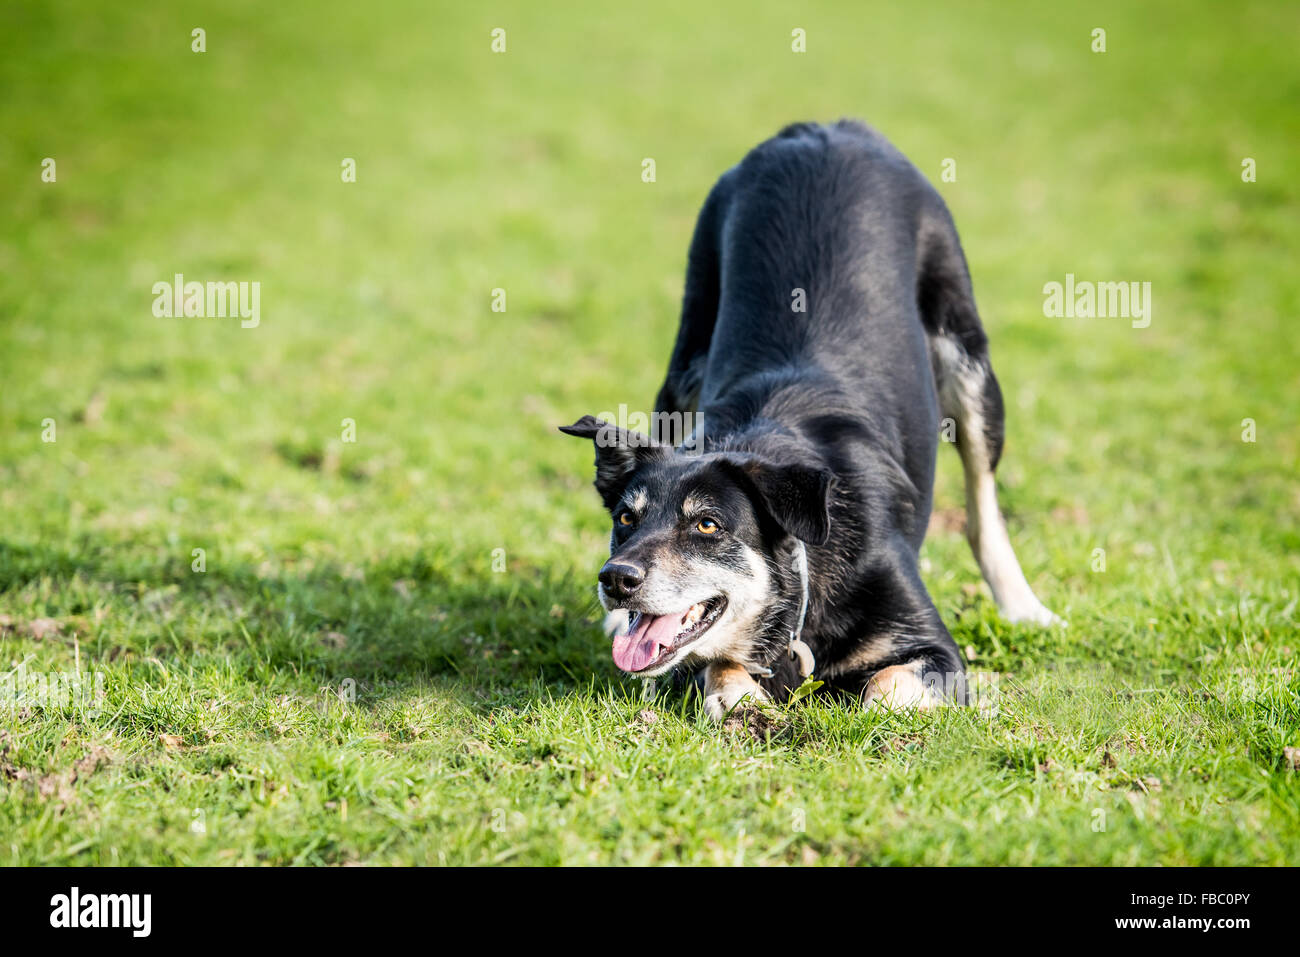 Sheep dog crouched waiting to play. - Stock Image